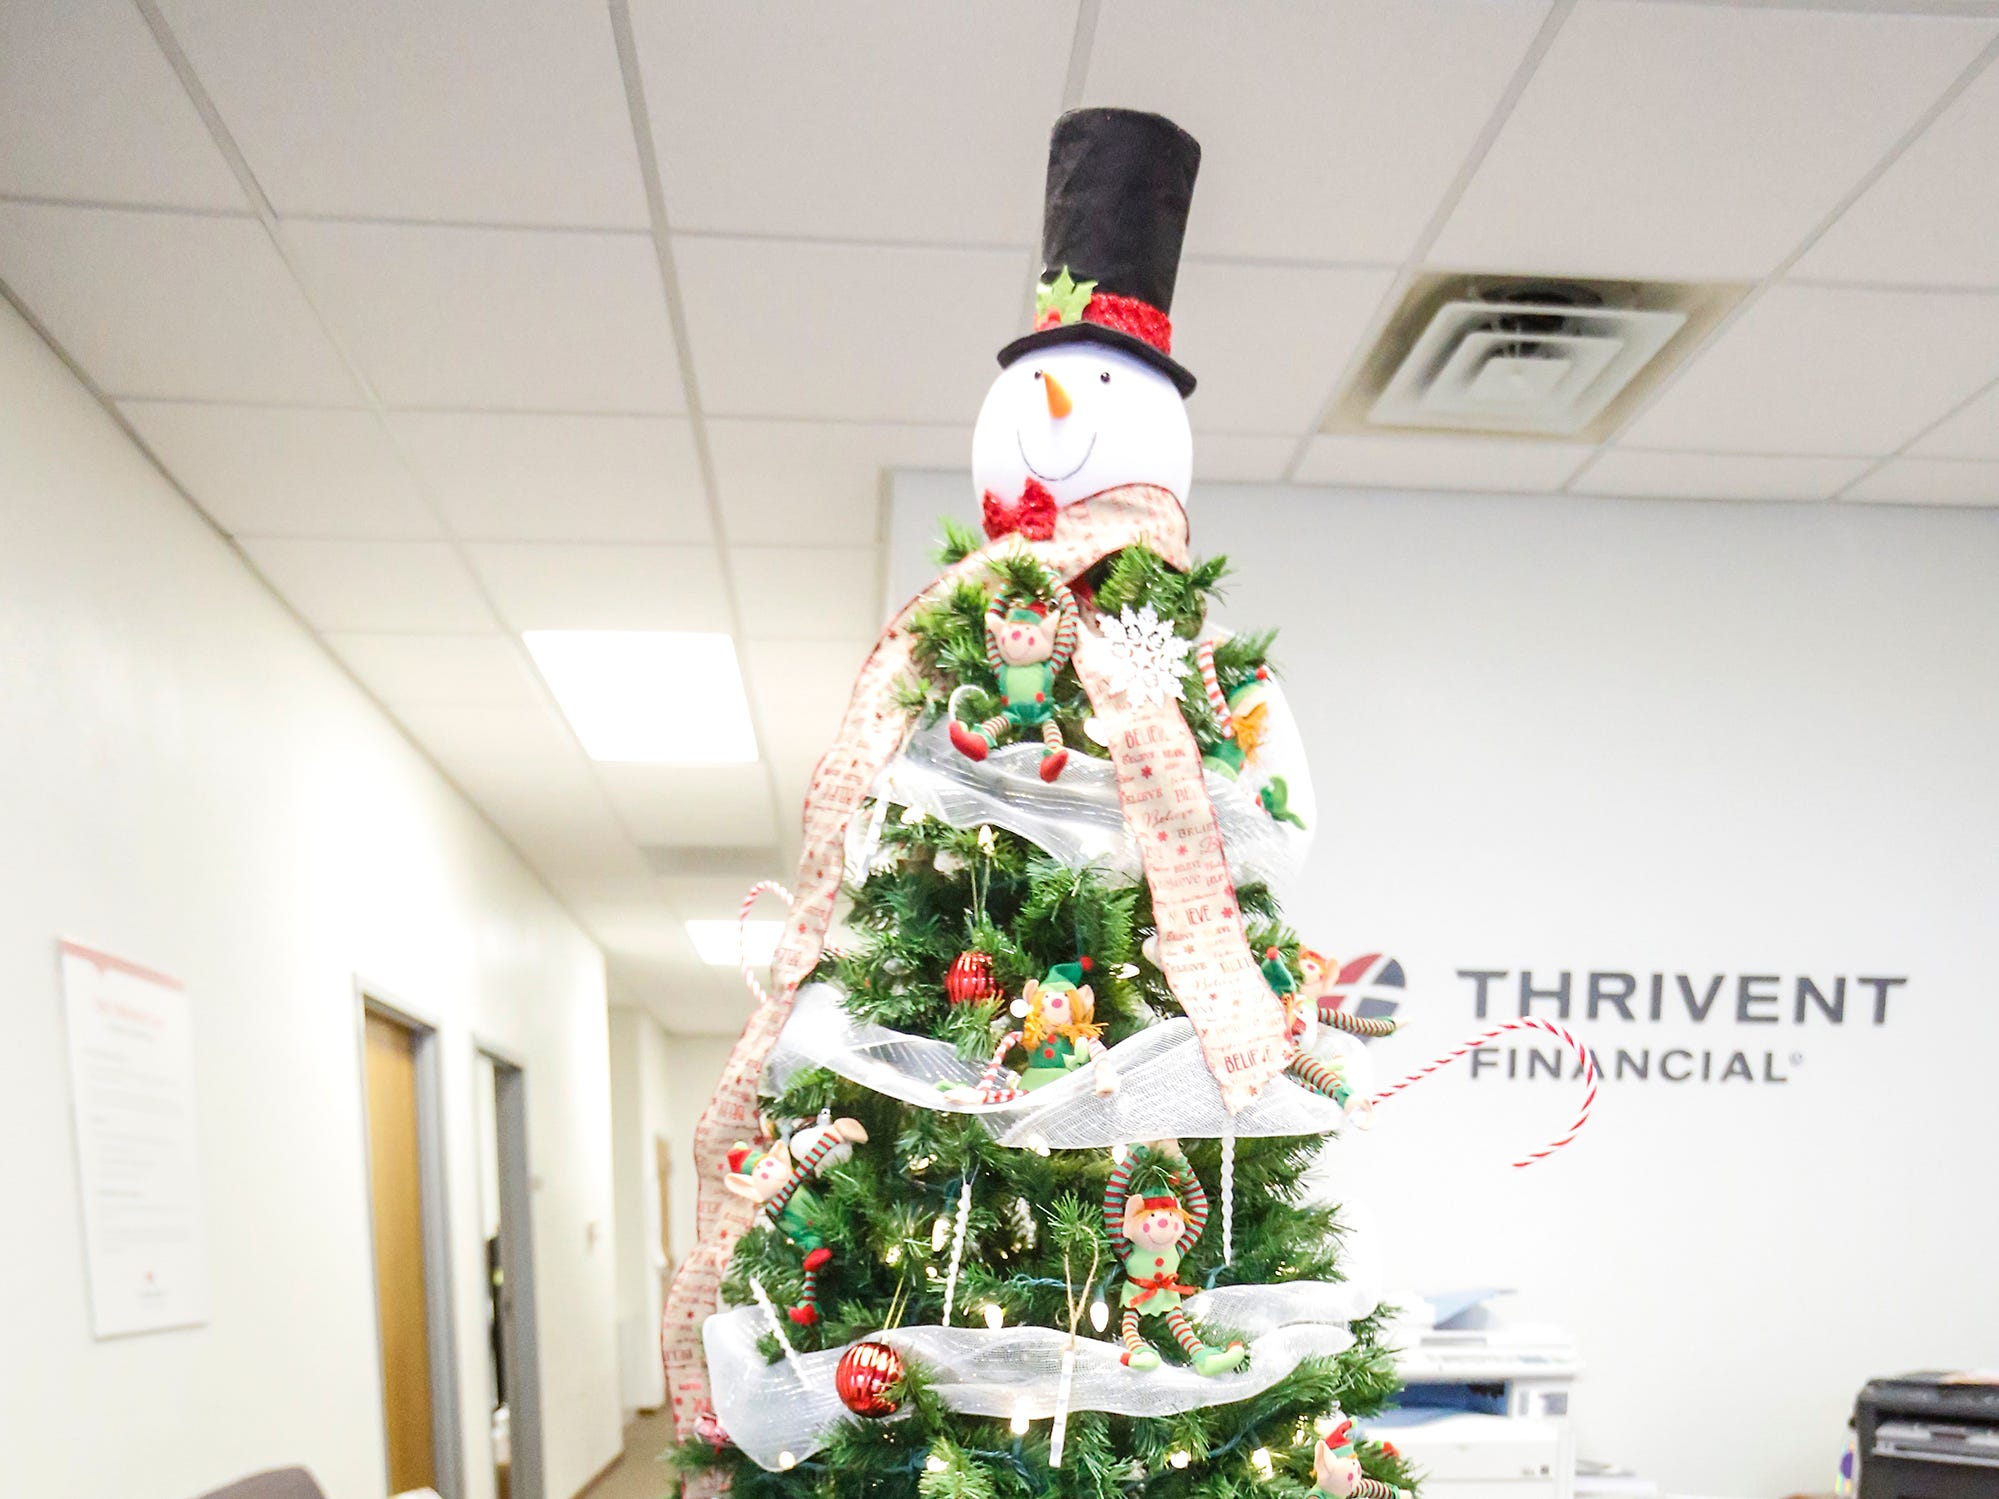 A Christmas tree decorated by Fondy Food Pantry on display Nov. 30 at Thrivent Financial at 443 N. Pioneer Road in Fond du Lac. A total of five trees made by local nonprofits are on display and can be voted on with proceeds going to the organizations.